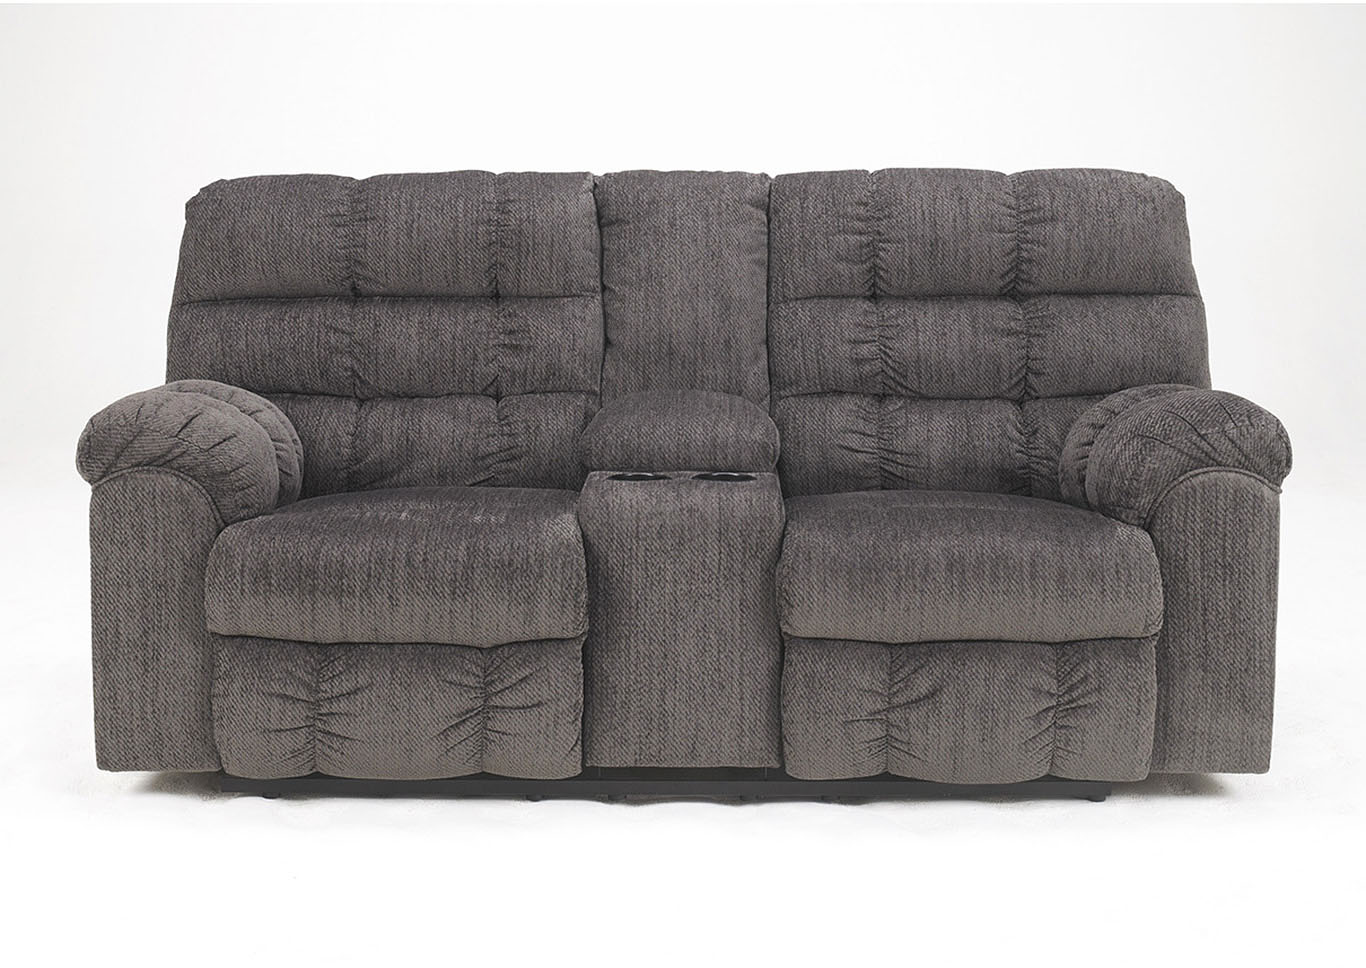 Acieona Slate Double Reclining Loveseat,Signature Design By Ashley